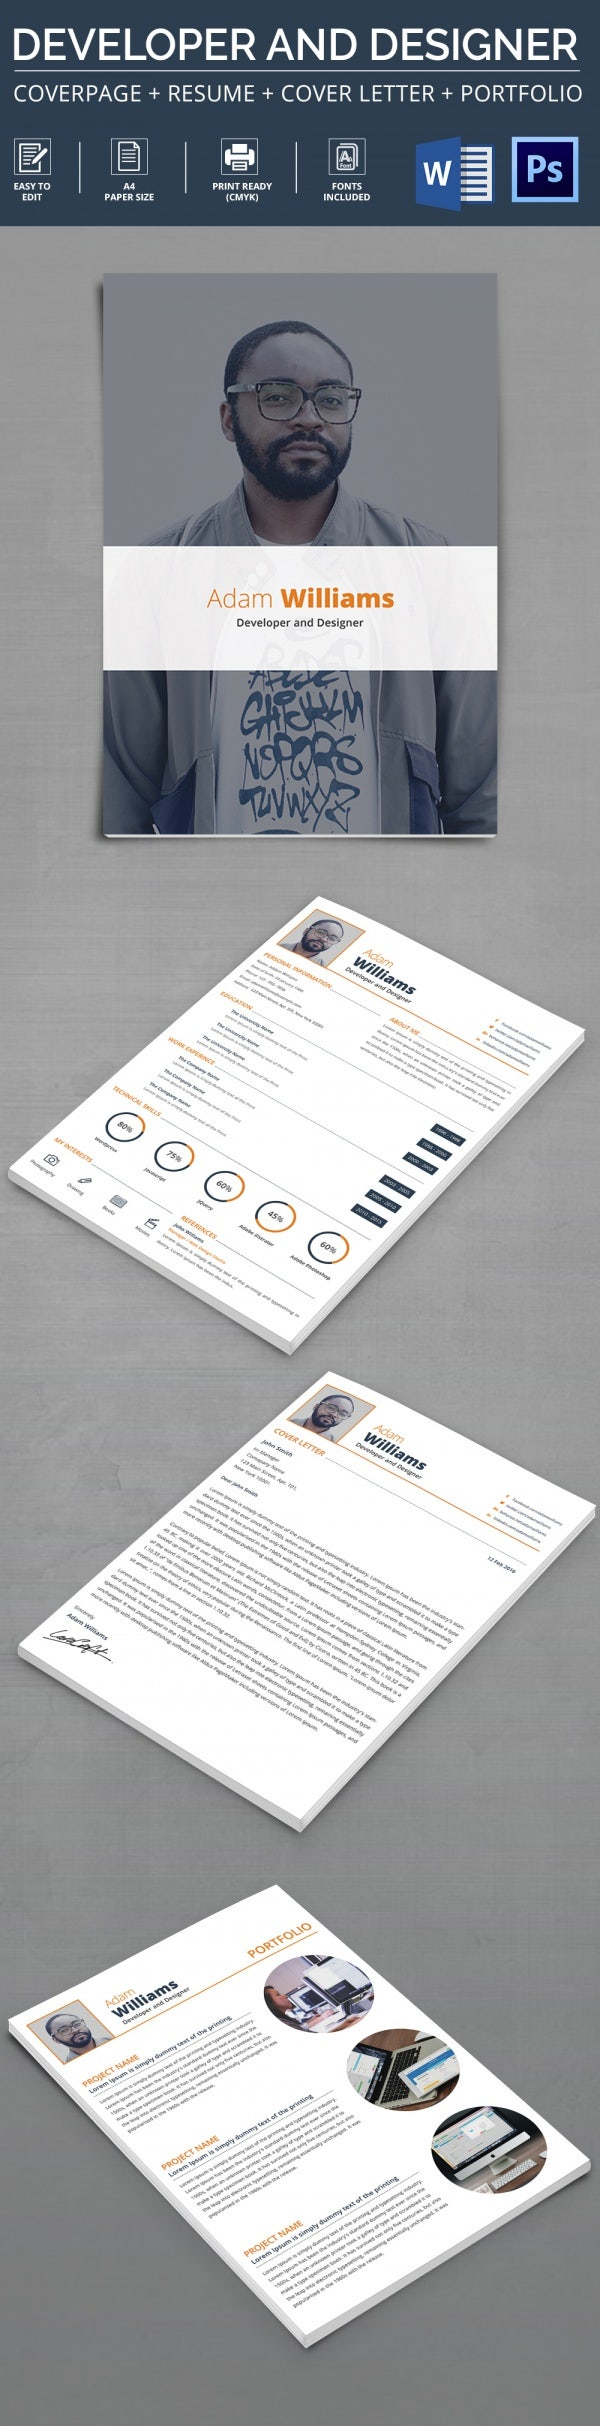 mac resume samples examples format developer designer resume cover letter portfolio template